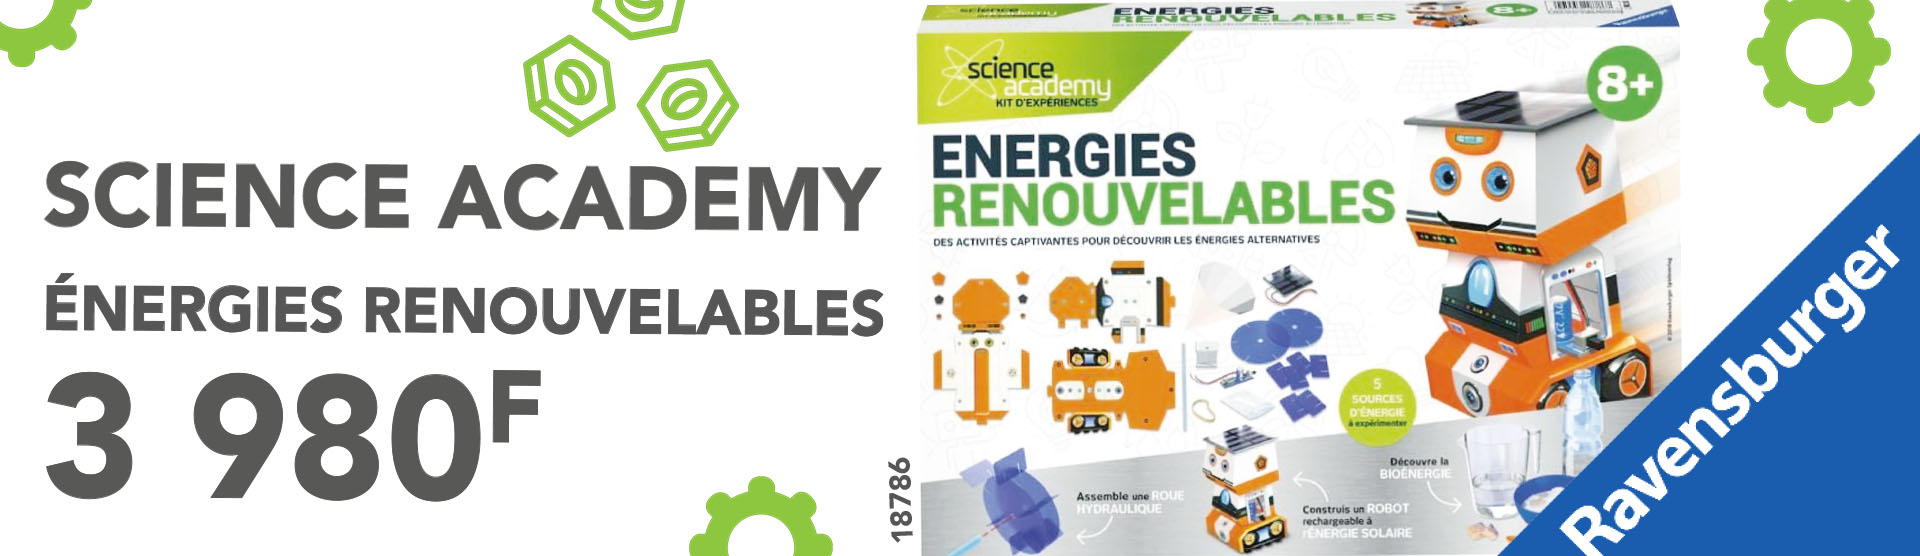 SCIENCE_JEU_SOCIETE_ENERGIES_RENOUVELABLES